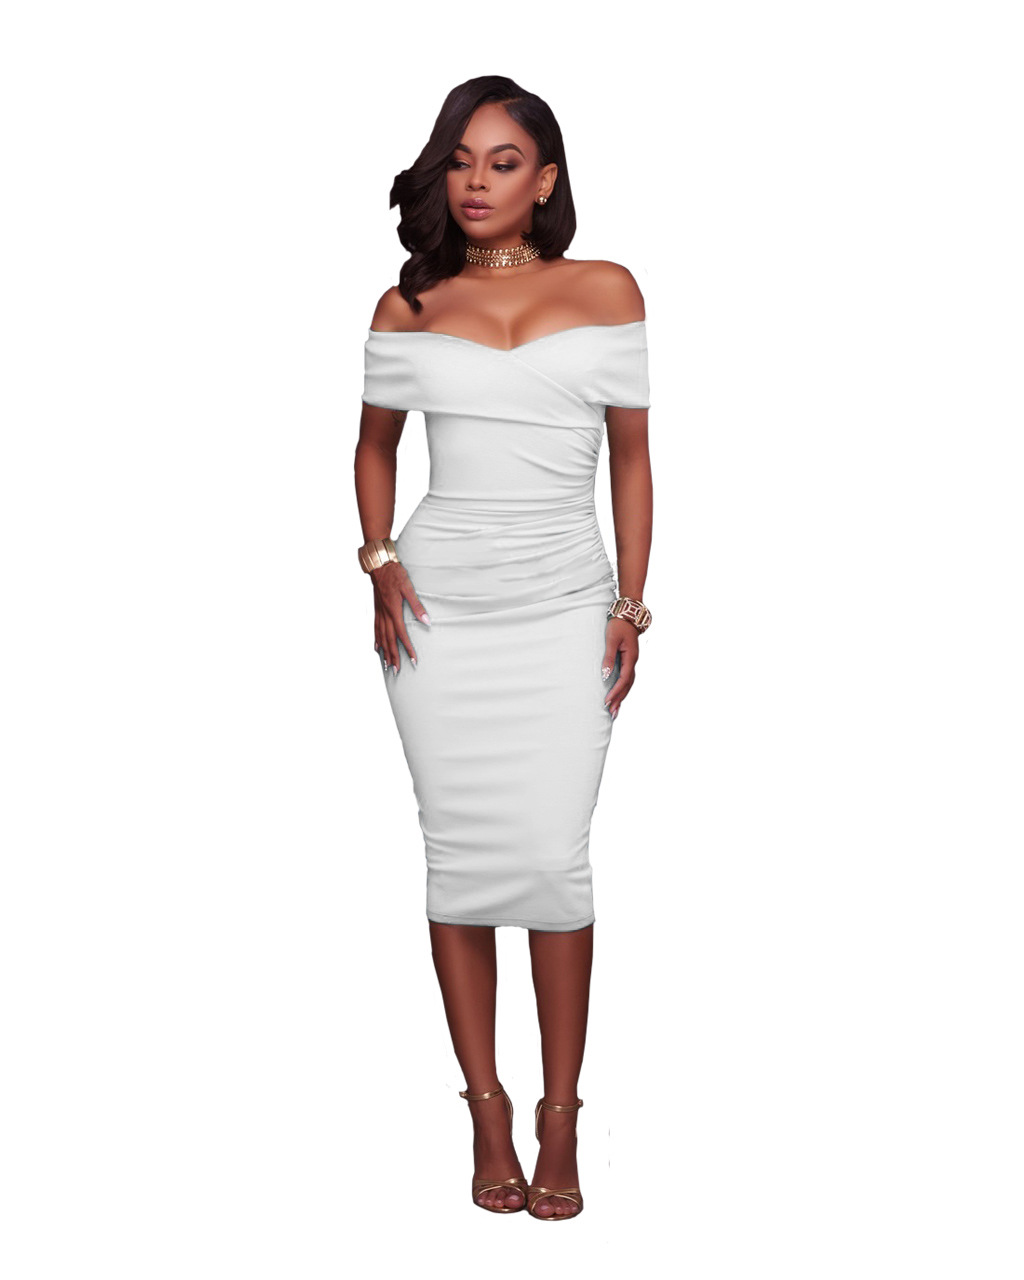 Women Midi Bodycon Dress Ruched Elegant Sexy Off the Shoulder Party  Clubwear Pencil Dress off white 972ab07a7